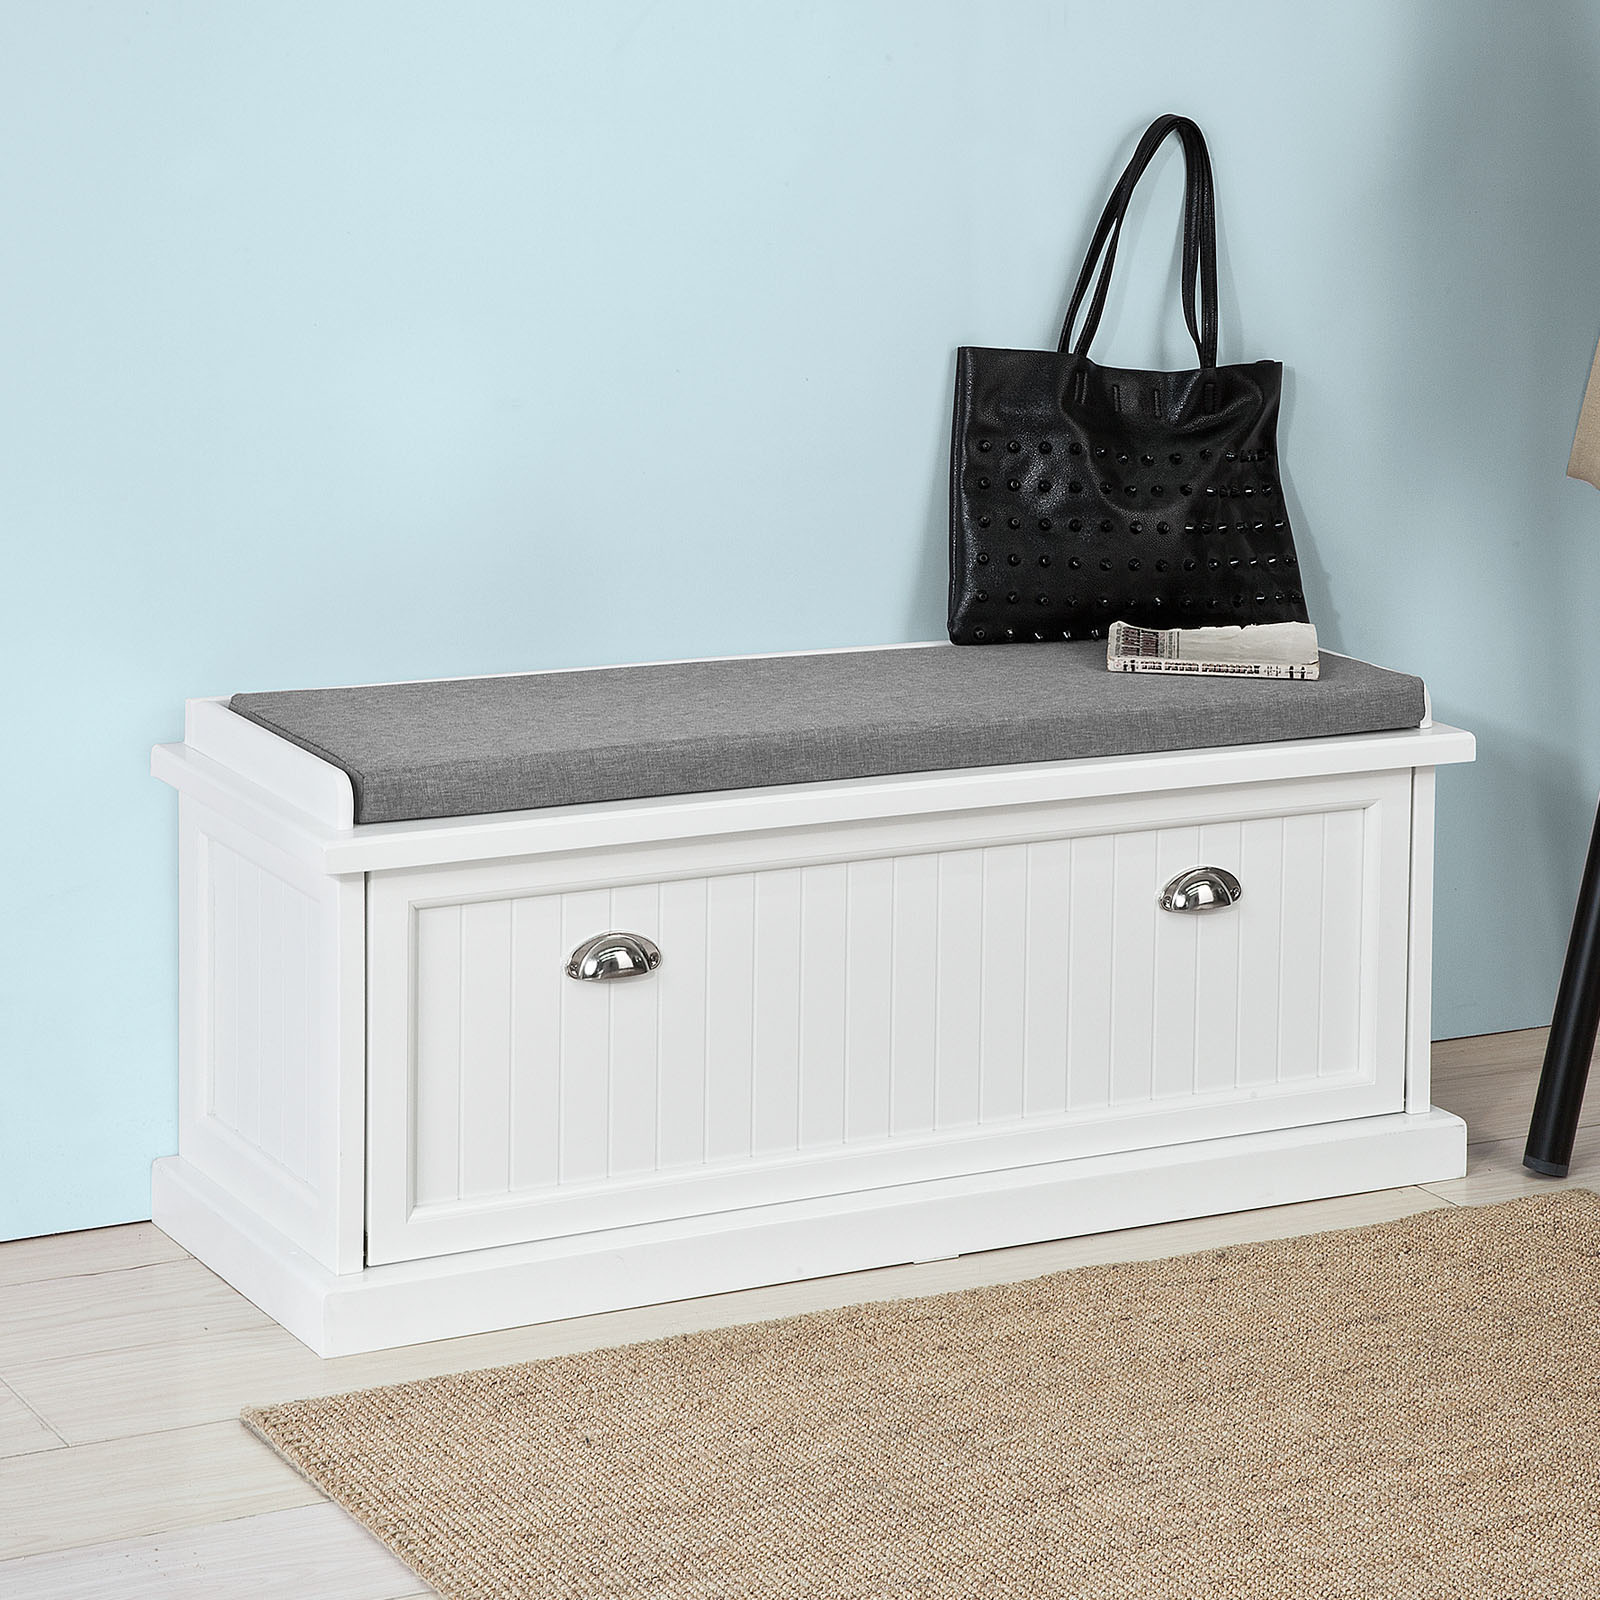 Beau Haotian FSR41 W, White Storage Bench With Removable Seat Cushion, Bench  With Storage